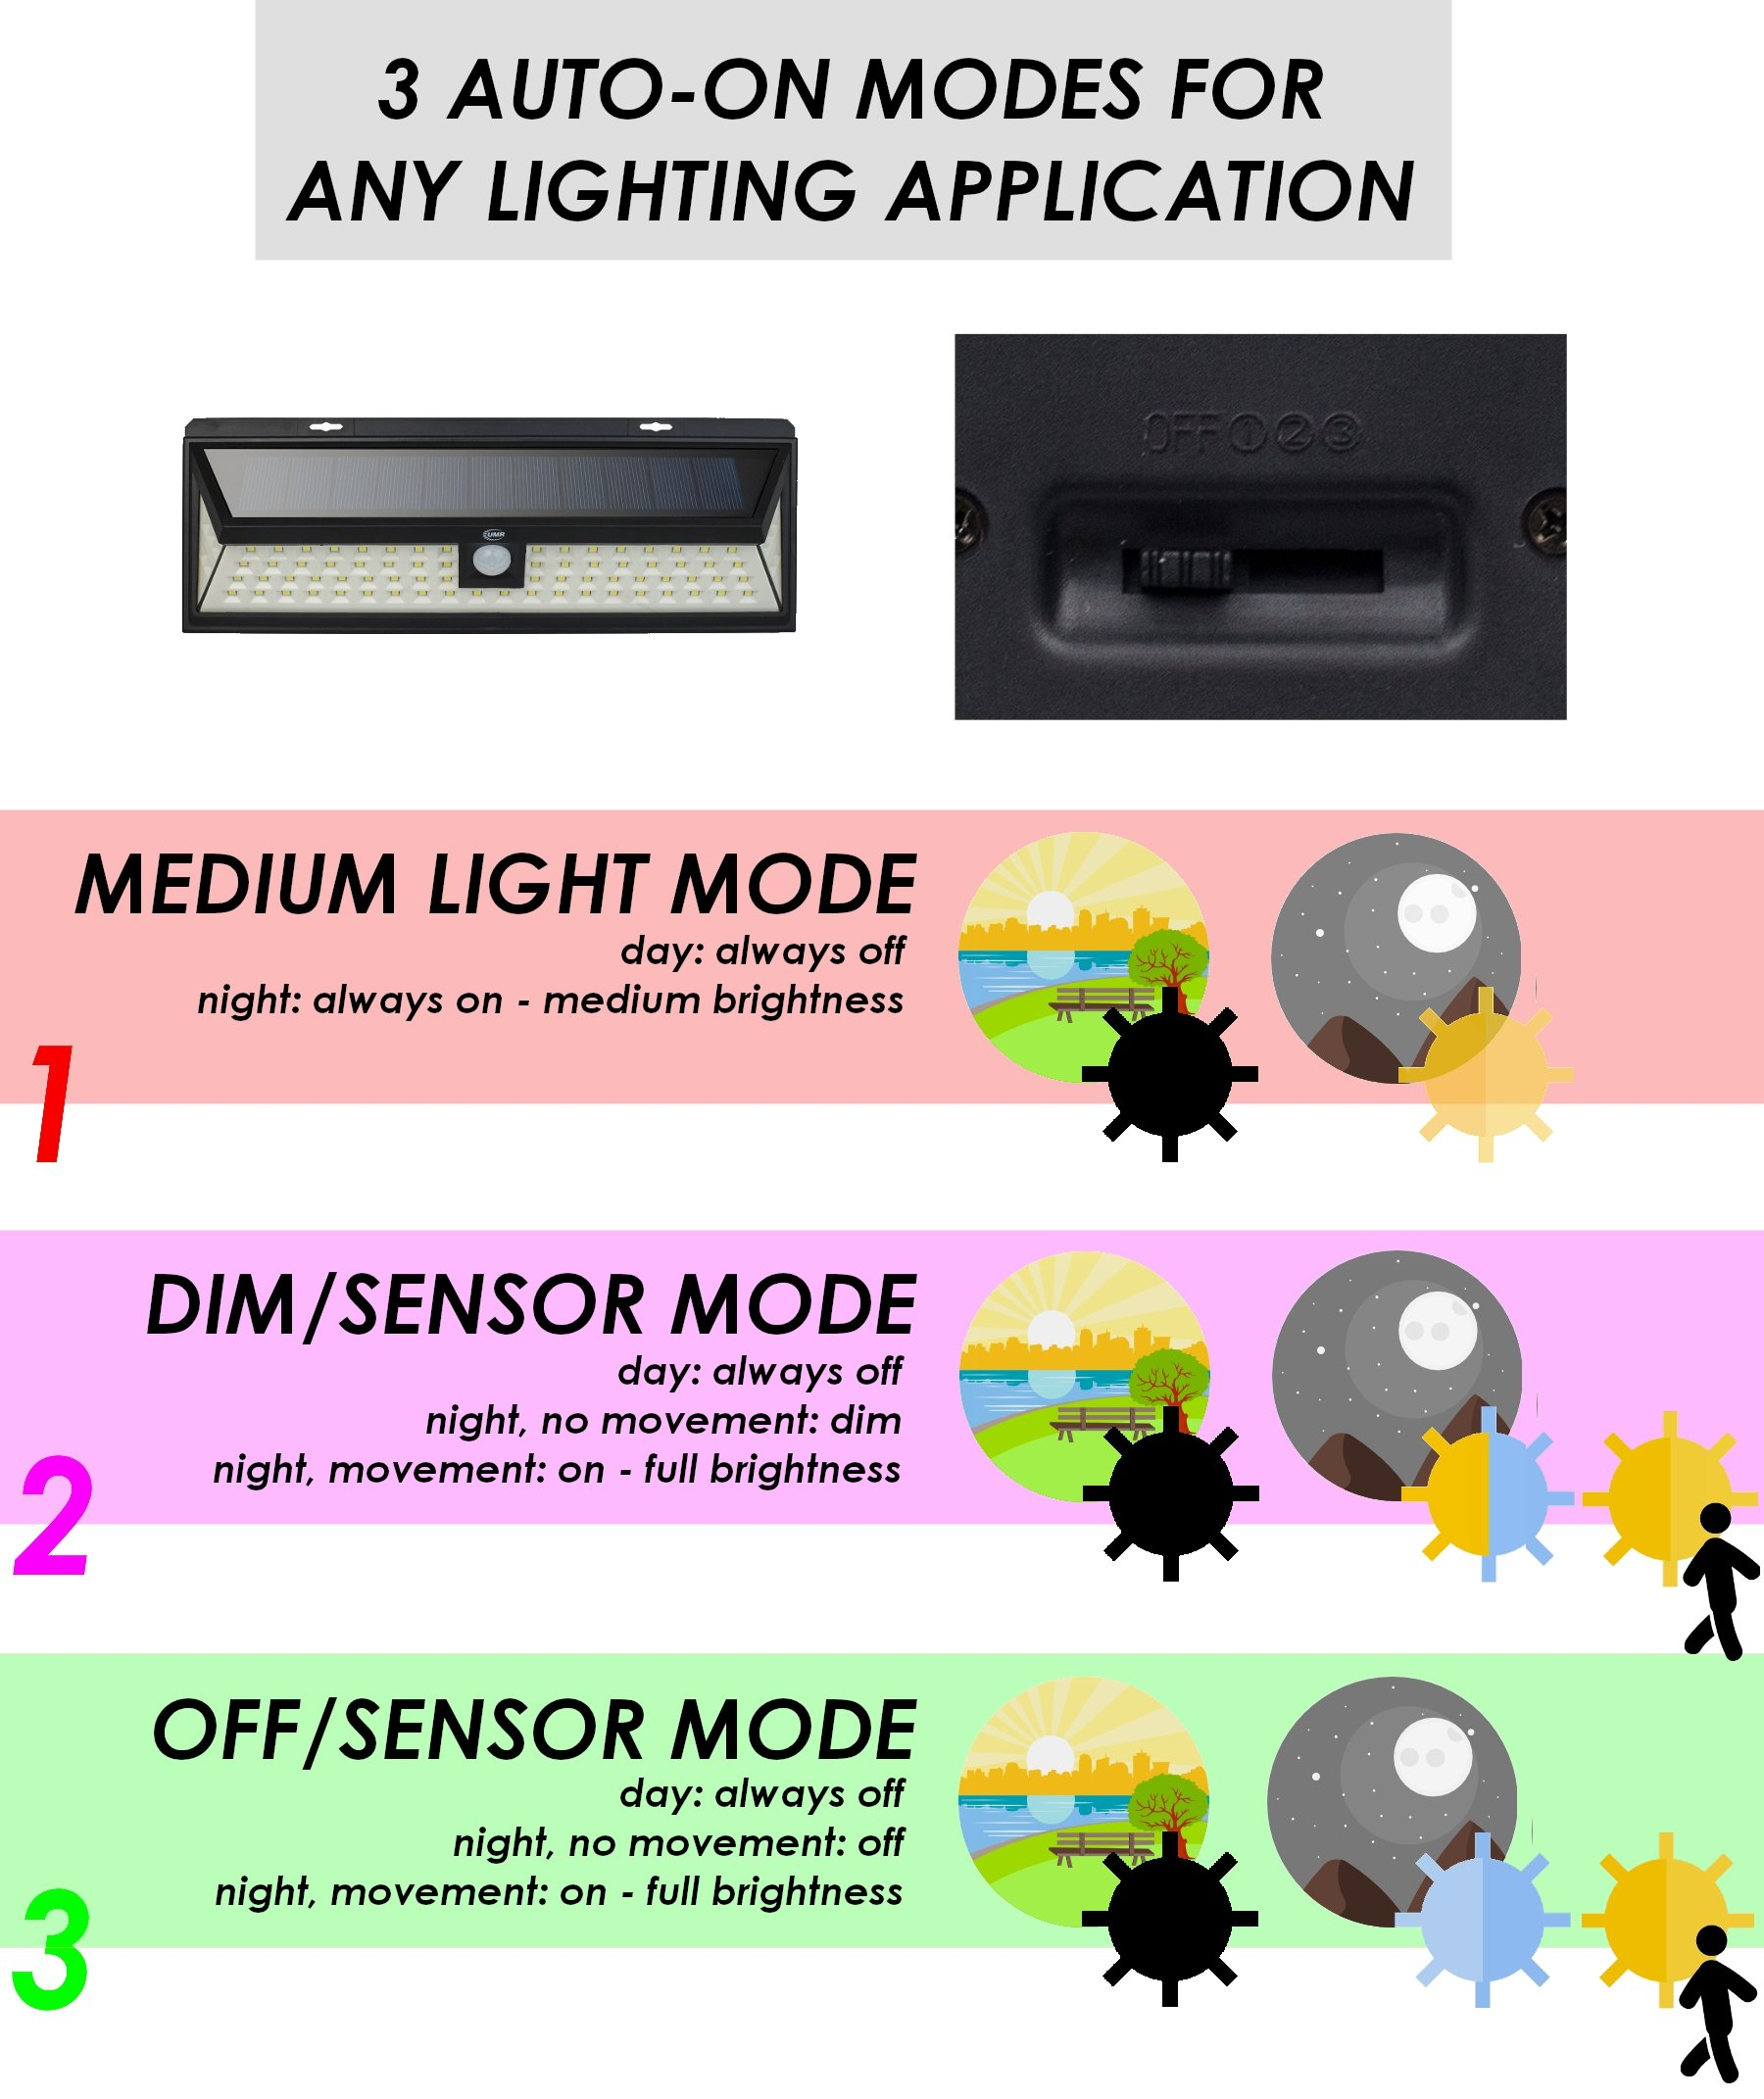 UMR 90 LED Solar Security Light - New 2018 Motion Sensor Outdoor Lighting w 5 LEDs Per Side, Dusk to Dawn Detector, Wireless Battery Power is Ultra-Bright for Exterior Outside Driveway Yard Patio Deck by UMR (Image #6)